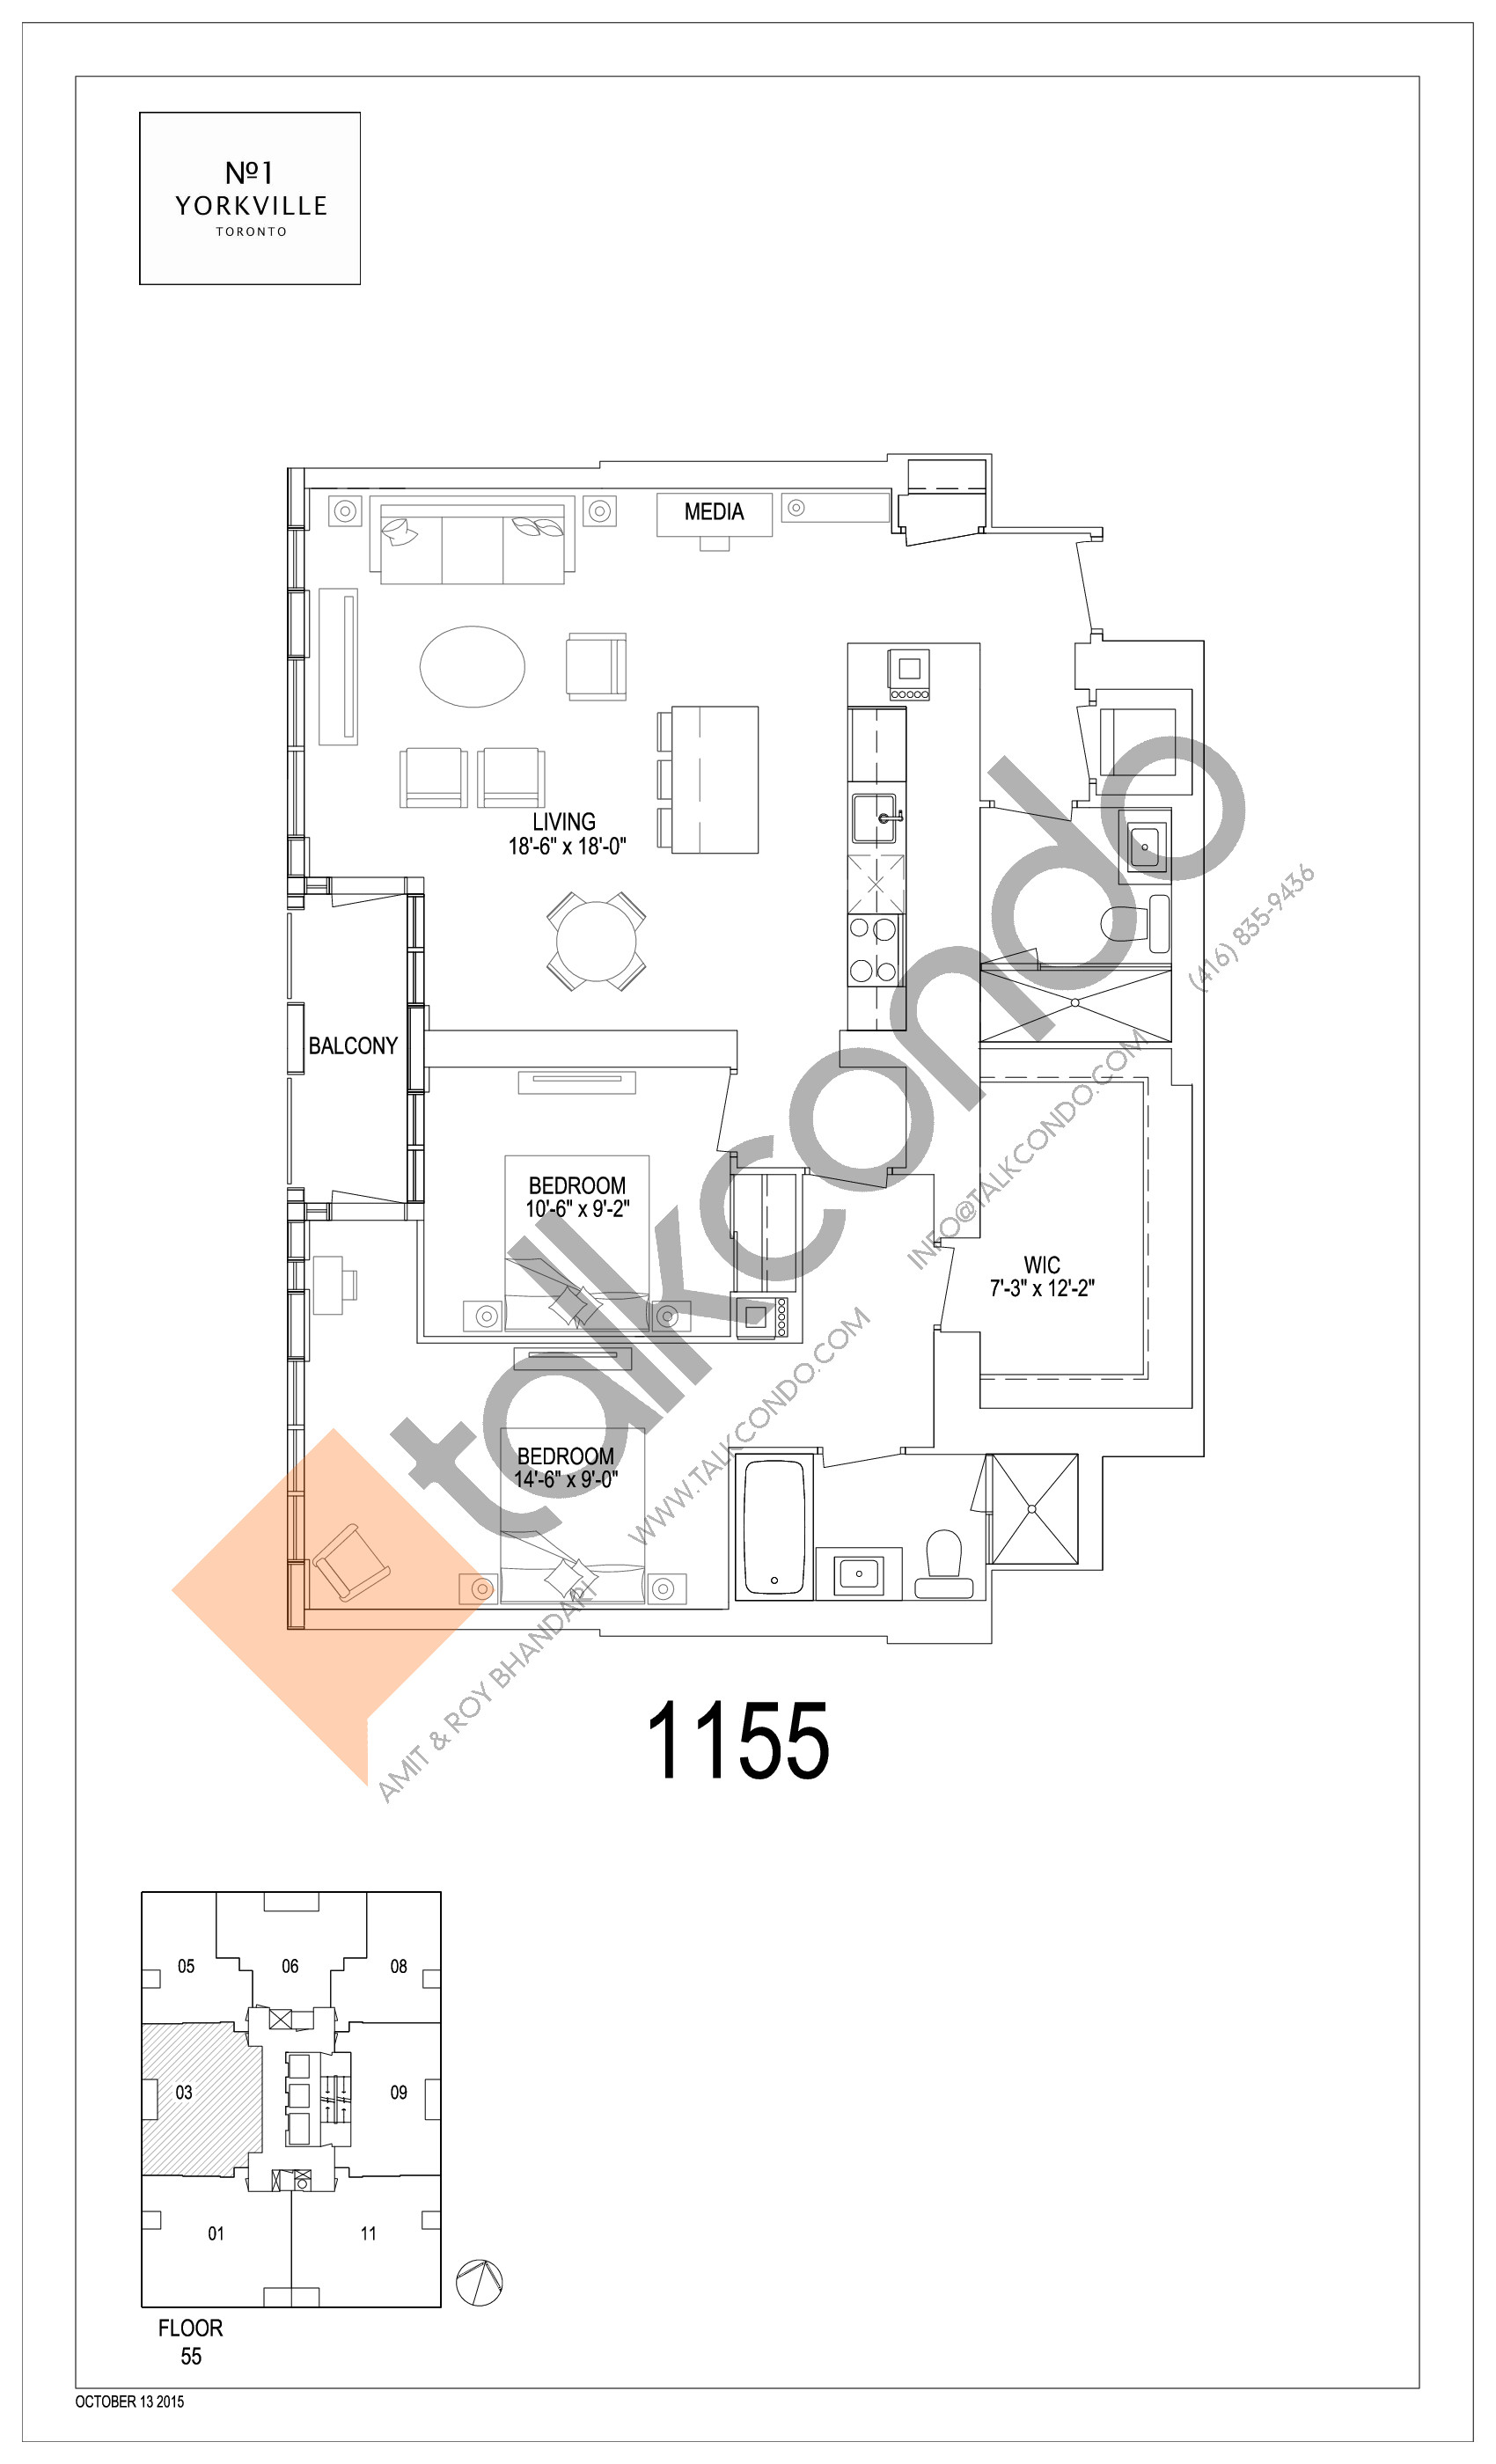 1155 Floor Plan at 1 Yorkville Condos - 1155 sq.ft